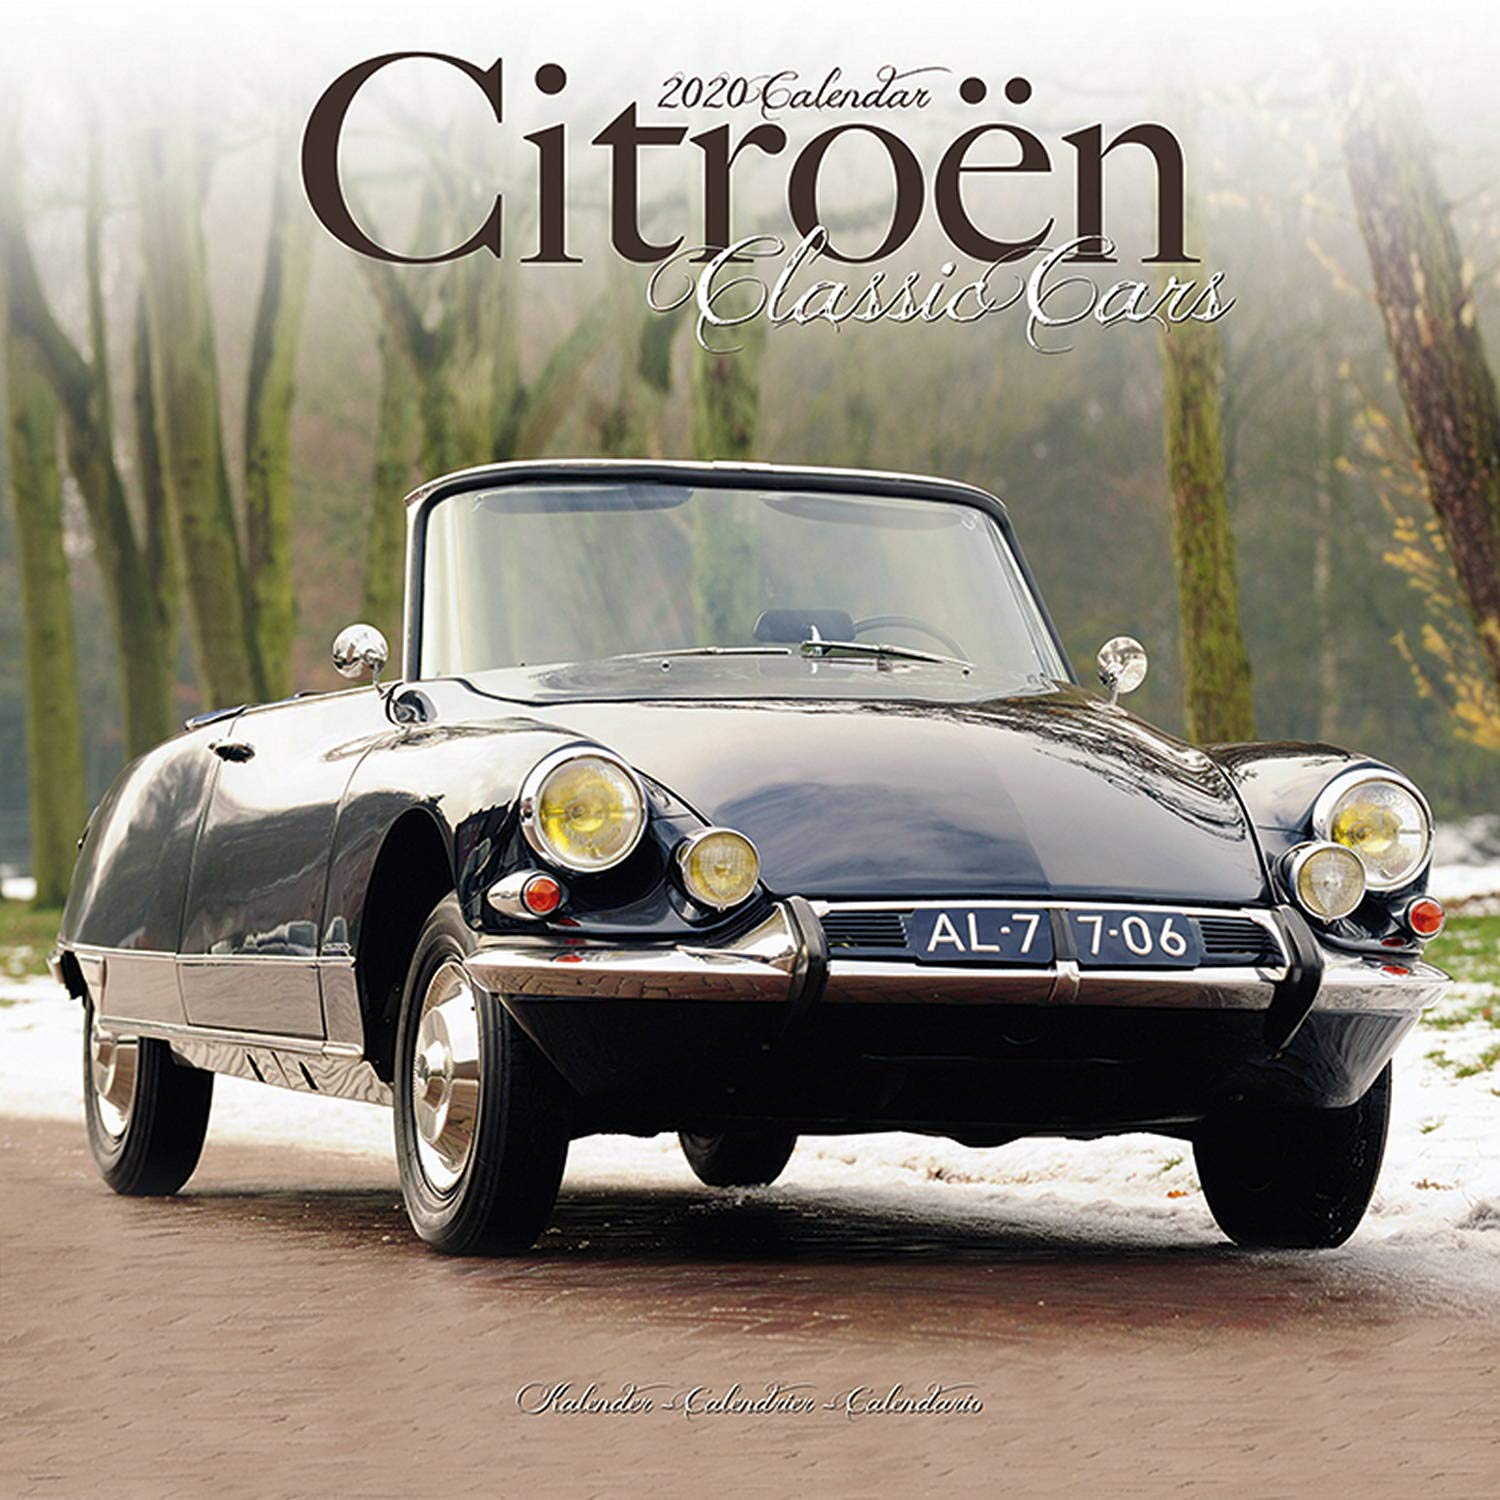 Calendrier Fun Car 2020.Citroen Classic Car Calendar Calendars 2019 2020 Wall